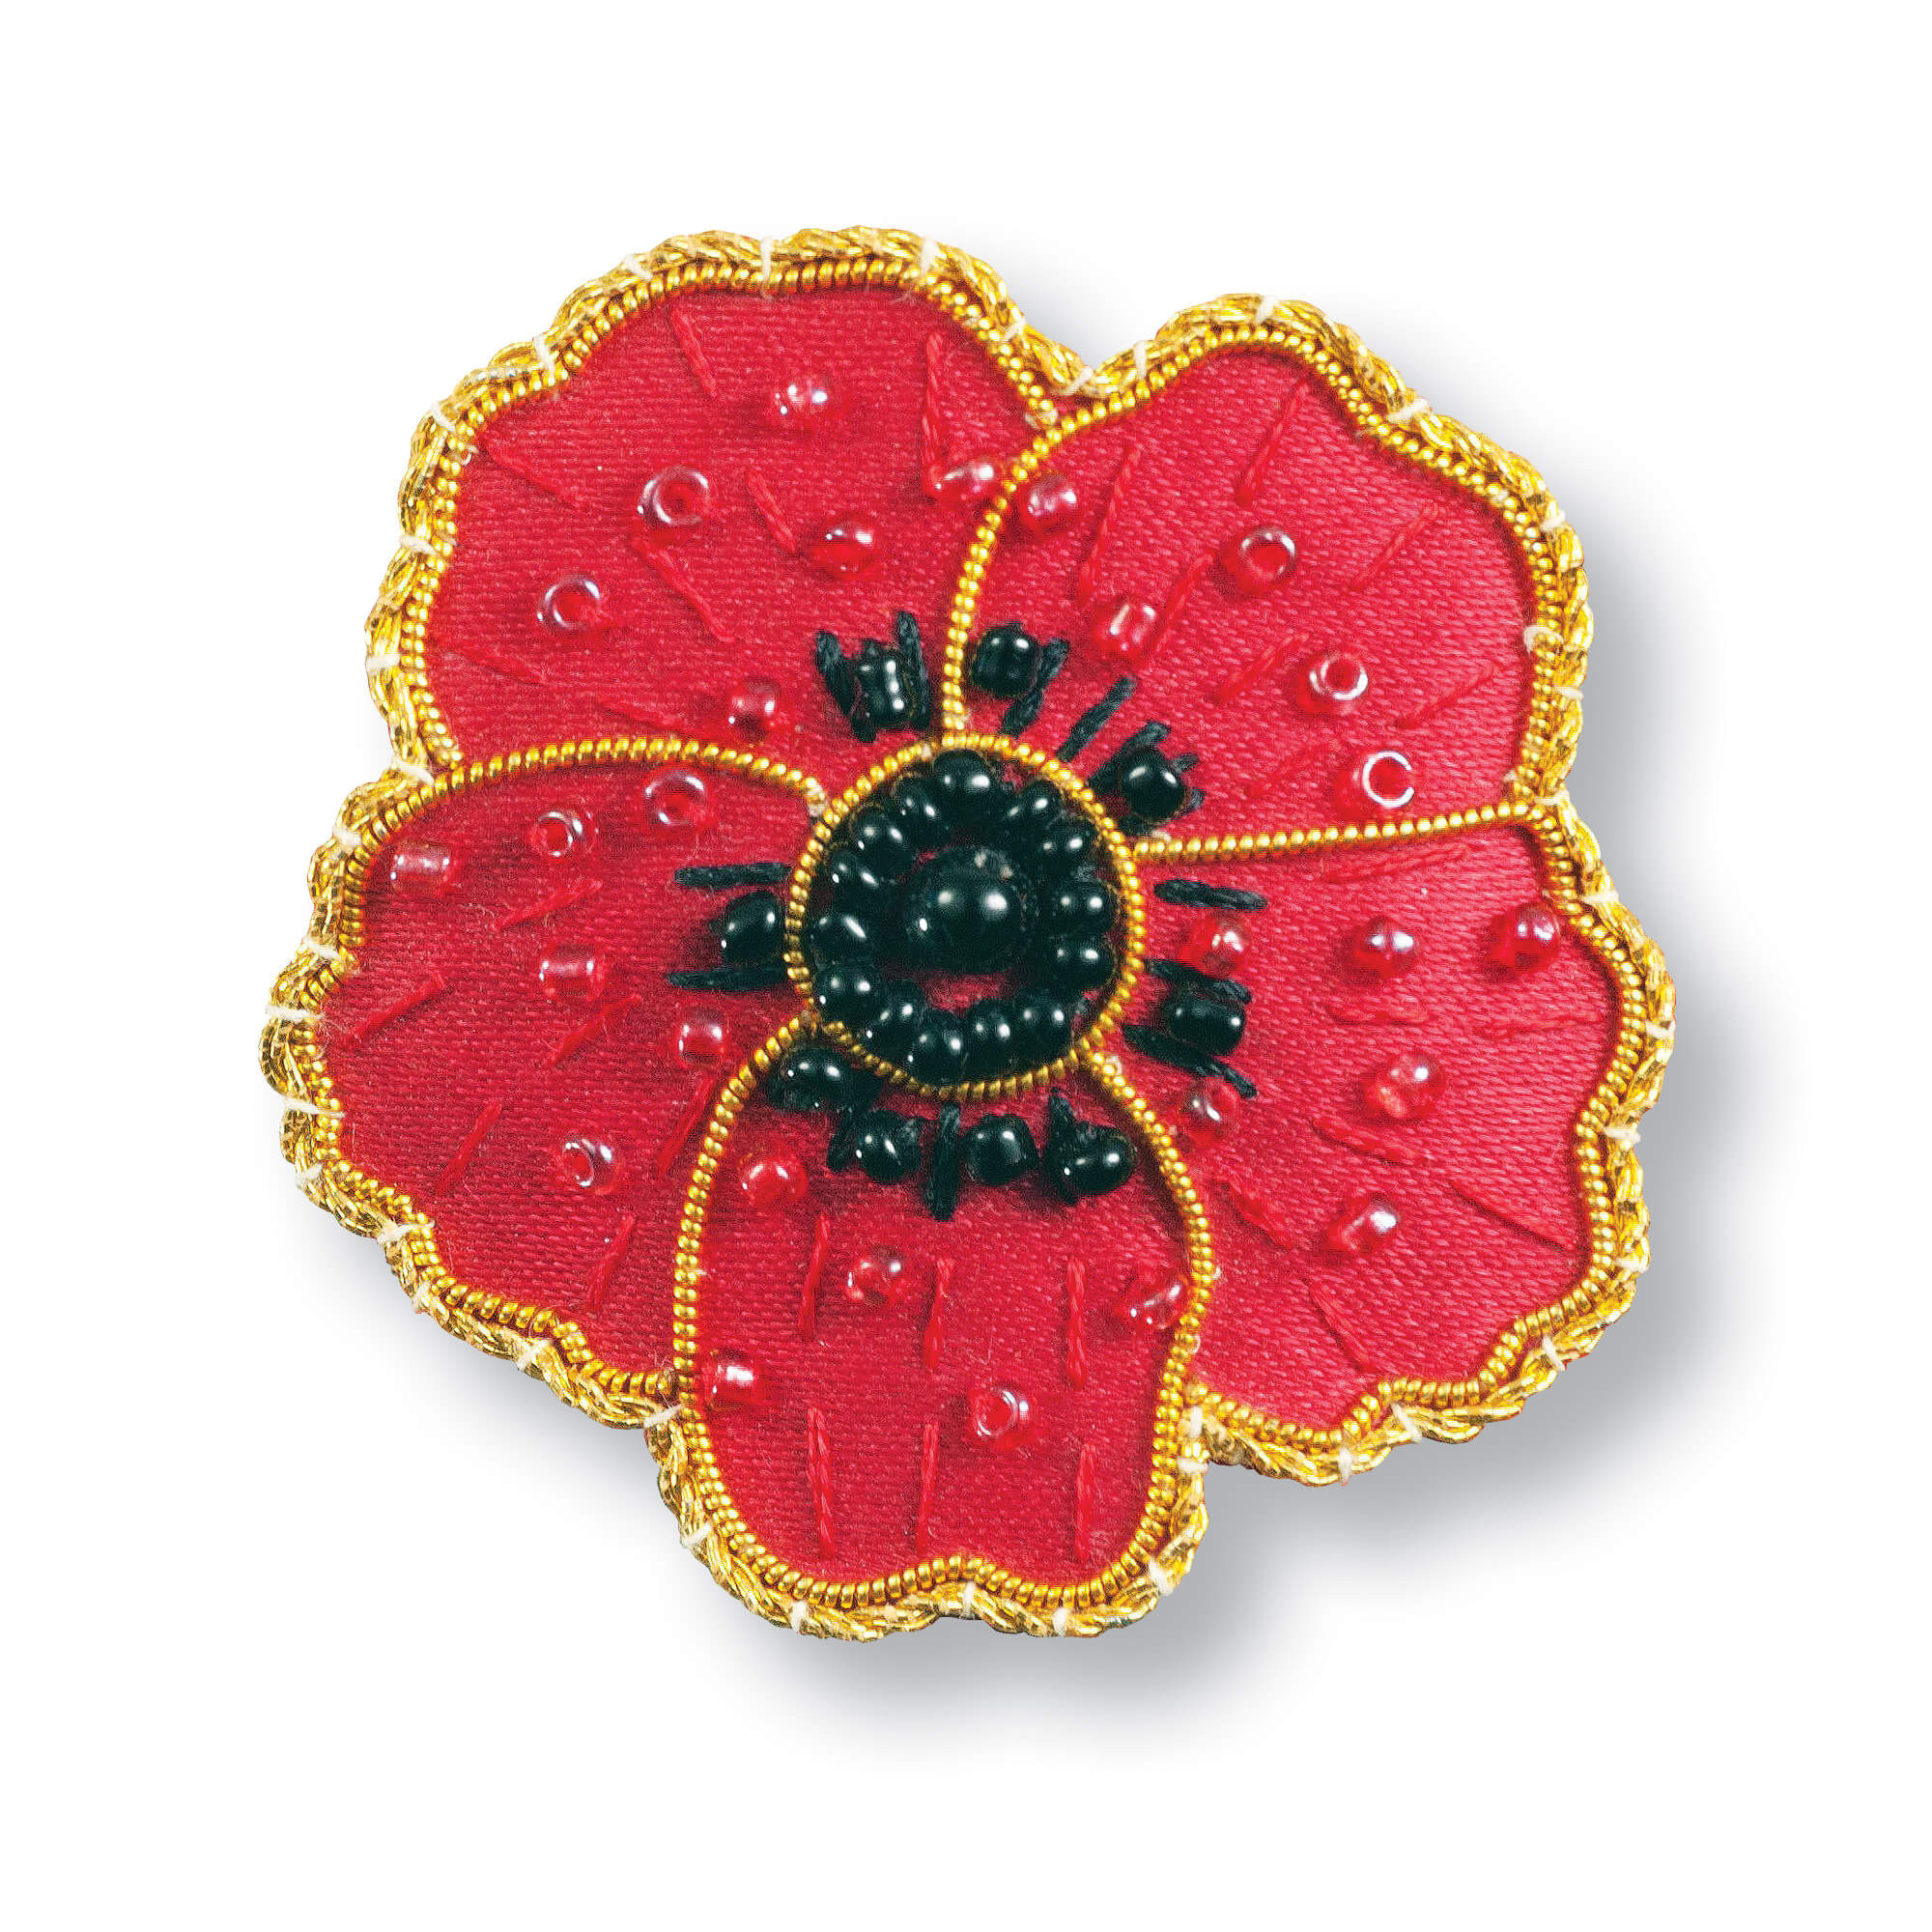 Poppy Products - Gifts